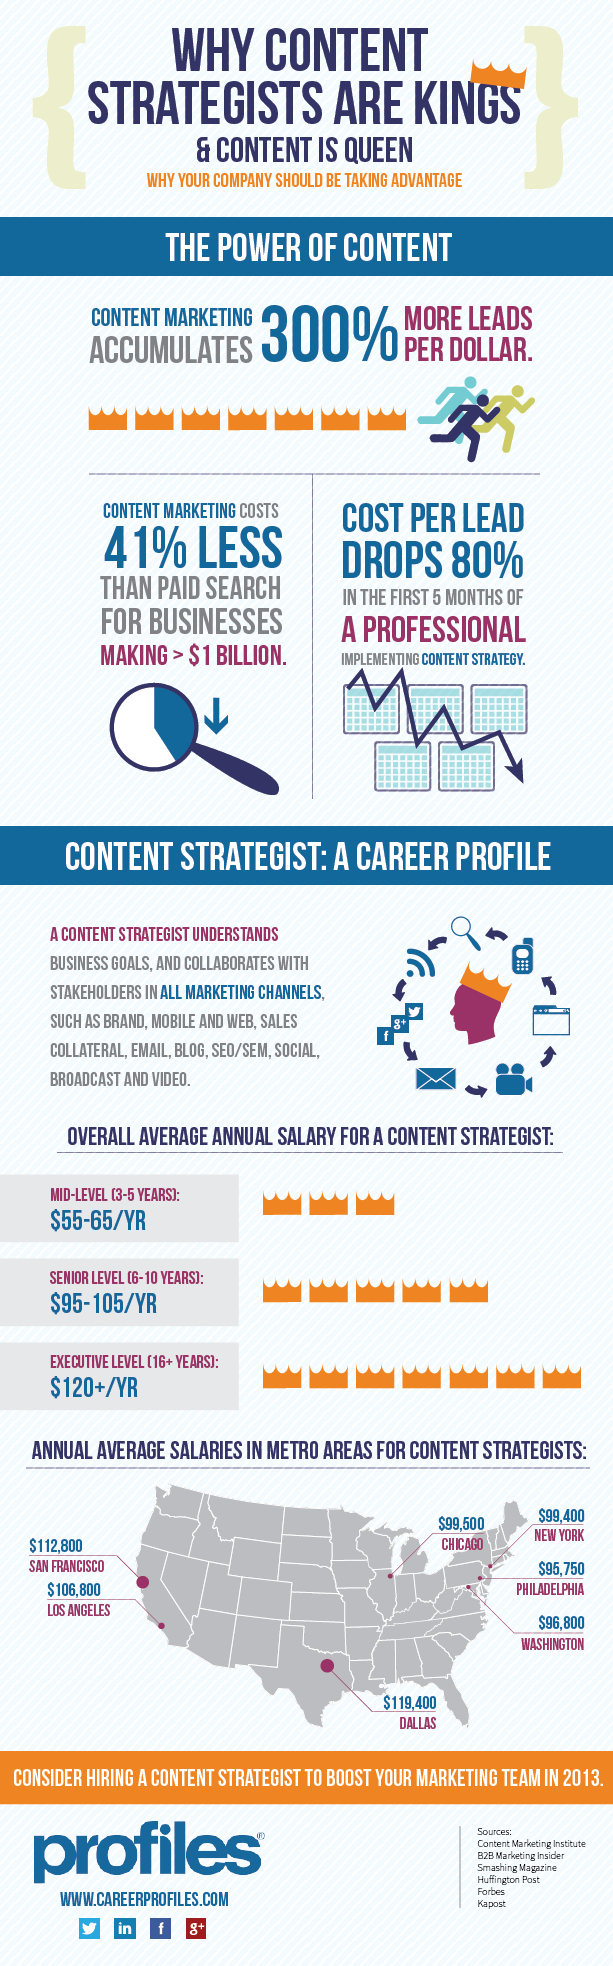 The Career of a Content Marketer